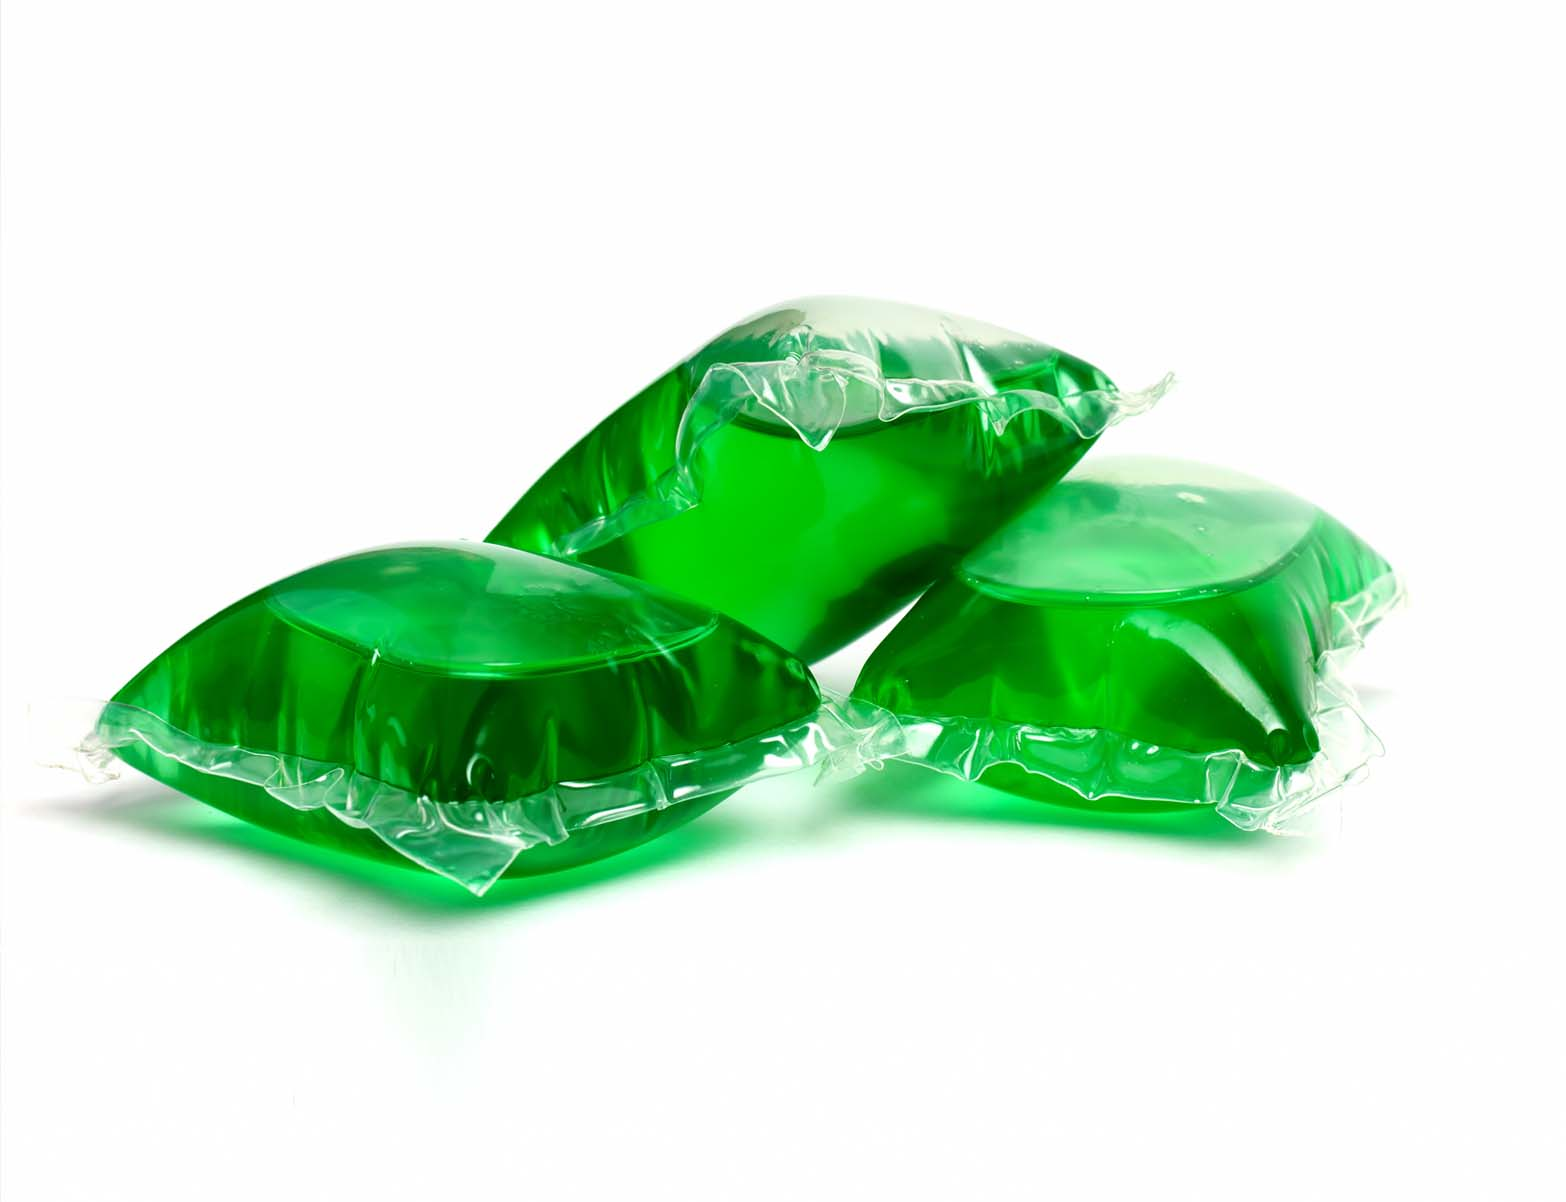 Other Flexible Packaging